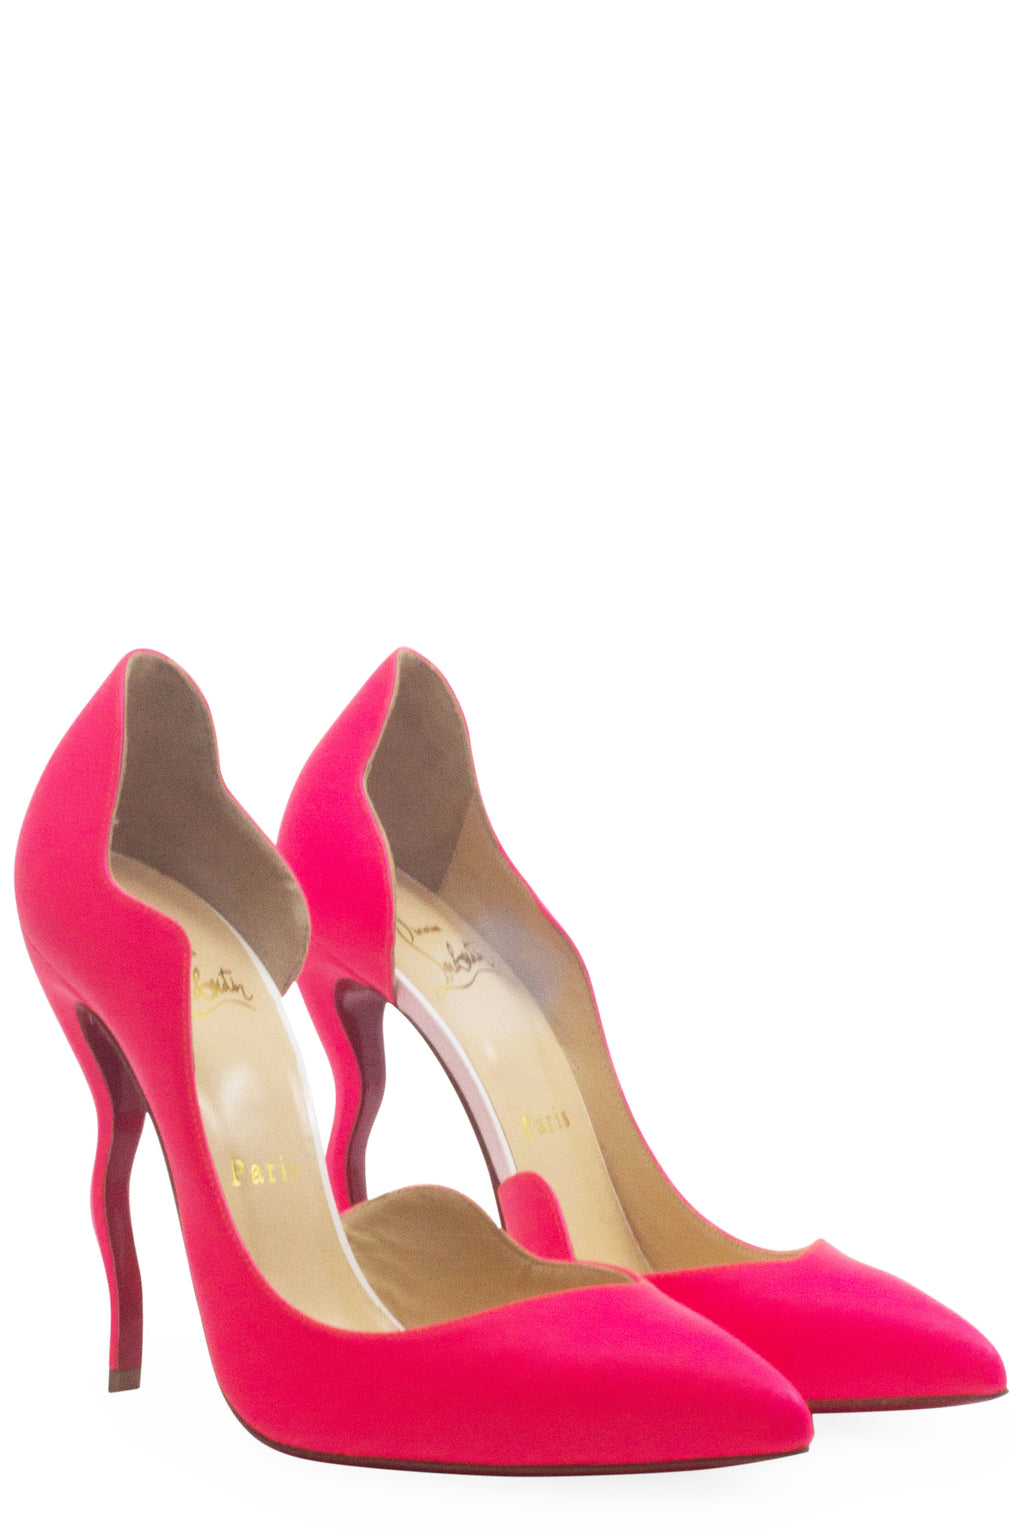 Christian Louboutin Neon Pink Dalida Fluo Matte Curve Heel